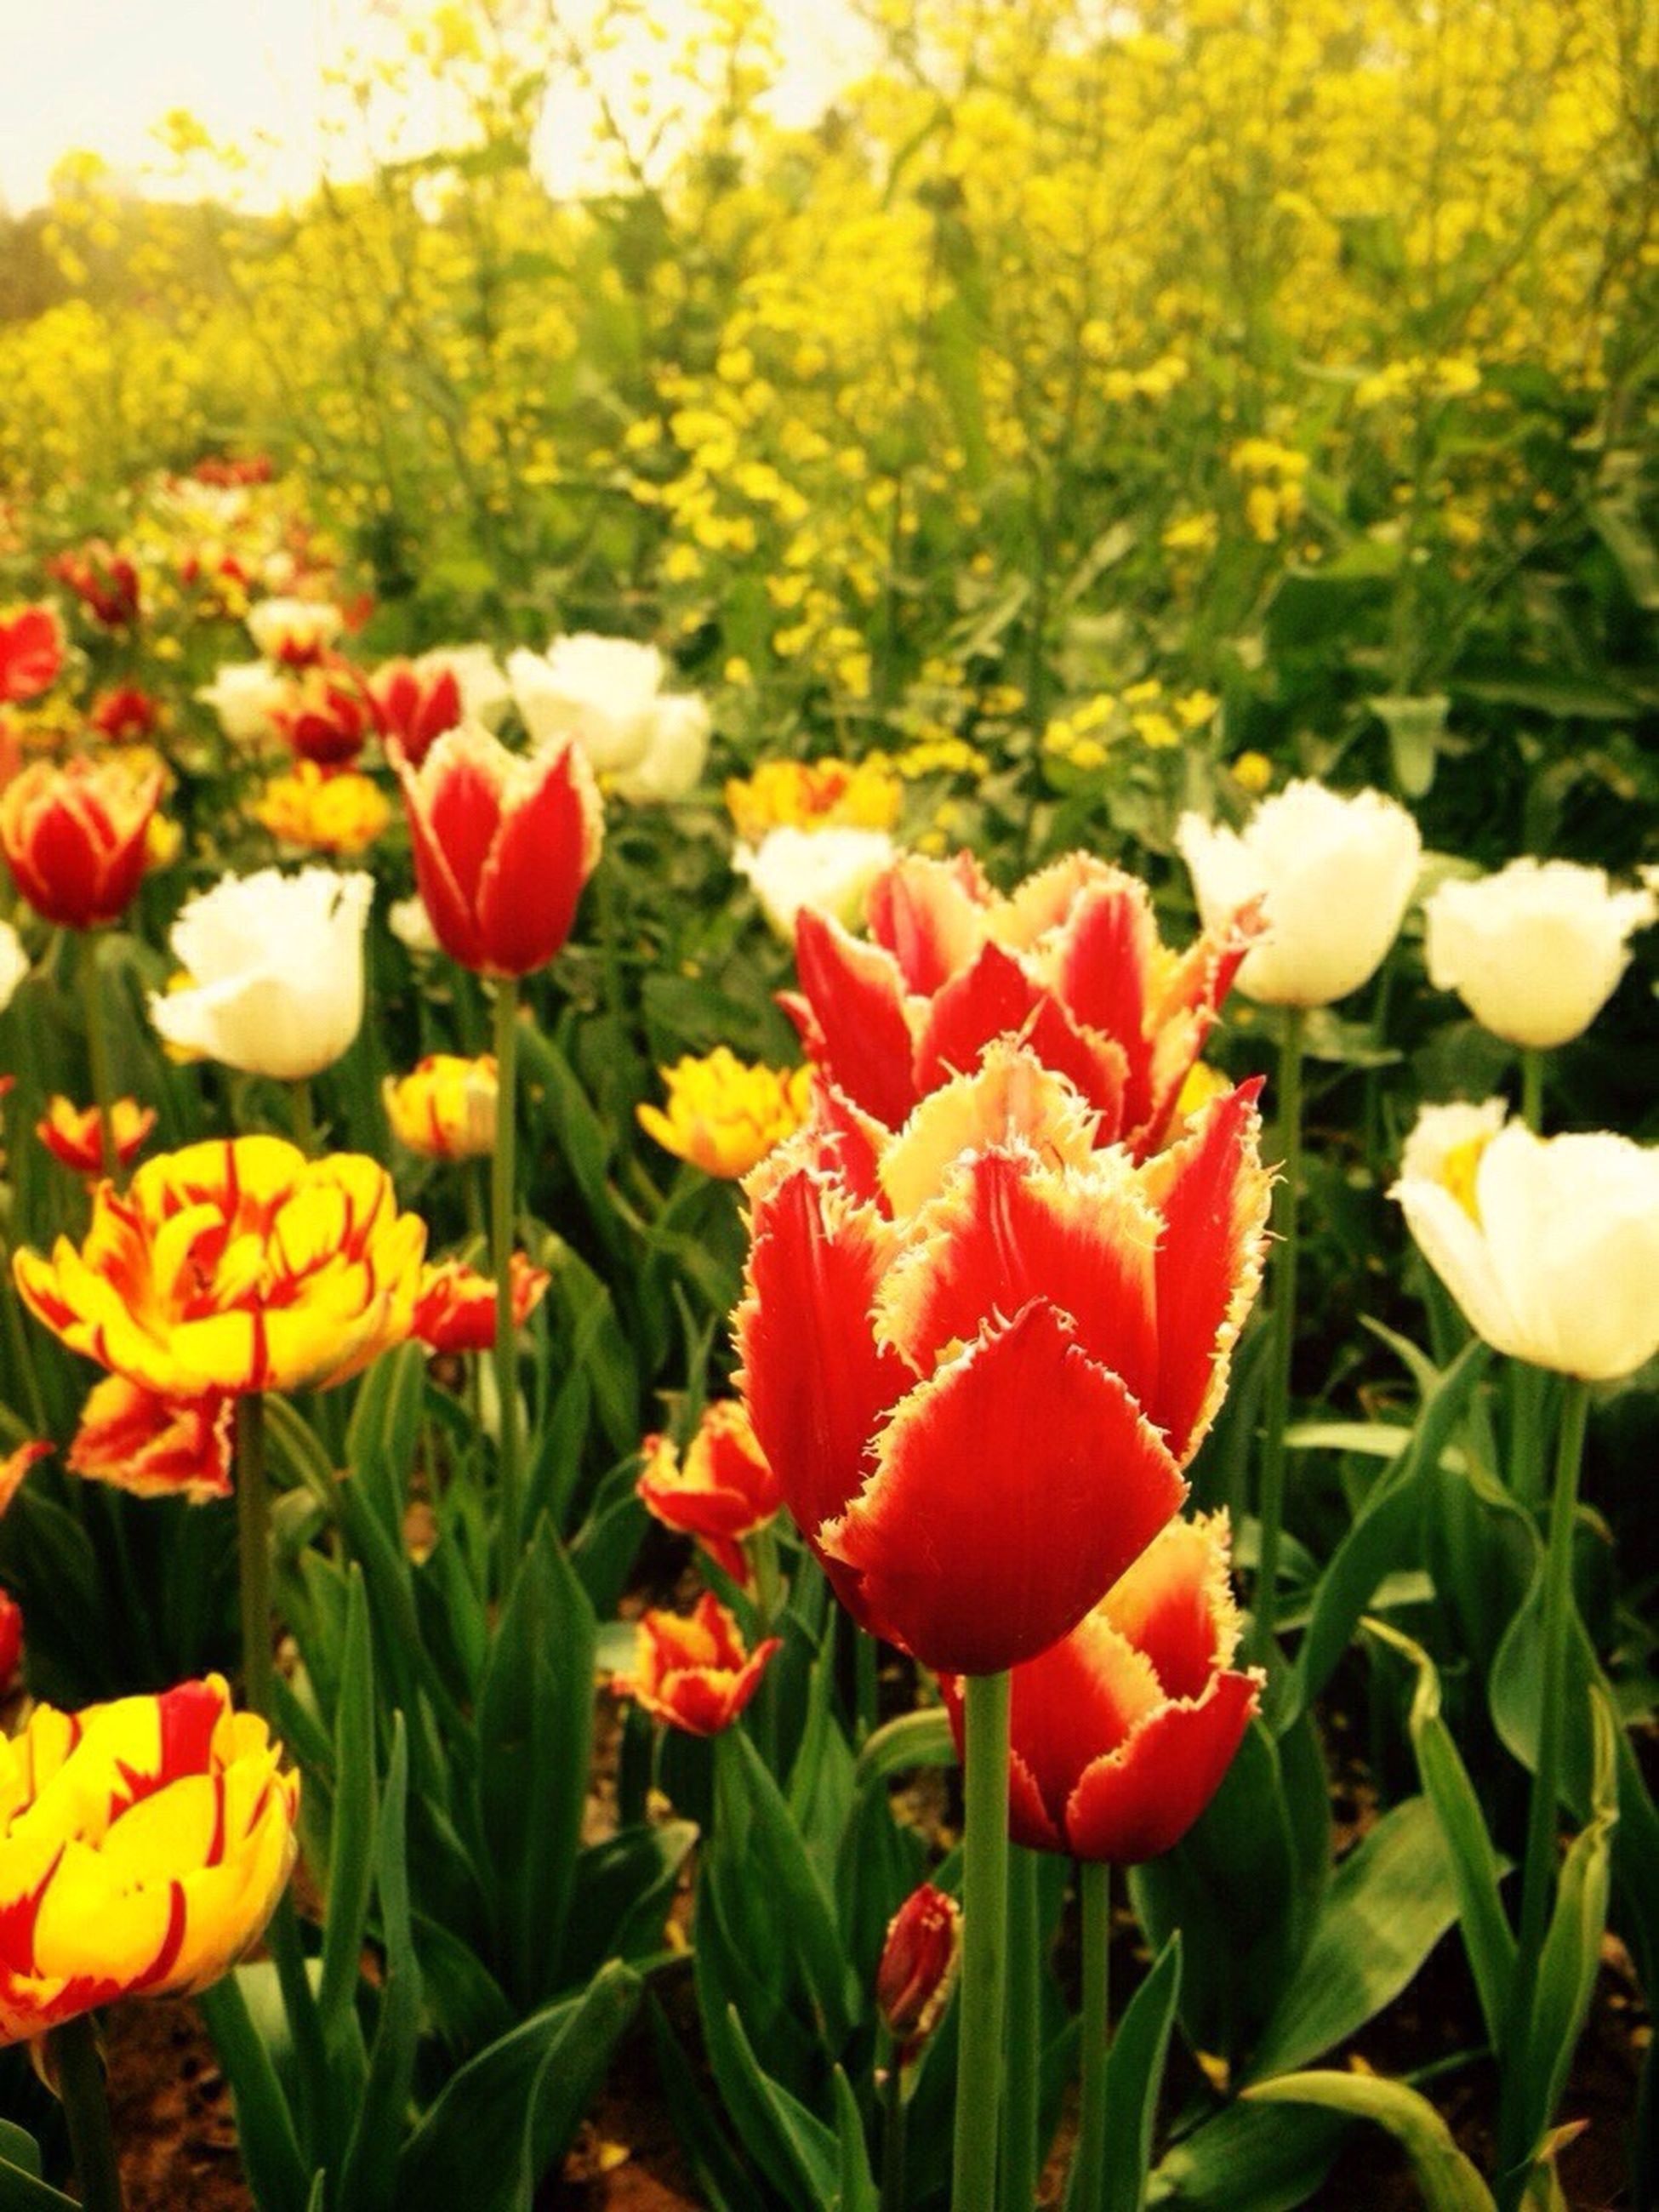 flower, freshness, petal, fragility, flower head, growth, beauty in nature, blooming, tulip, nature, field, plant, in bloom, yellow, focus on foreground, close-up, red, park - man made space, blossom, abundance